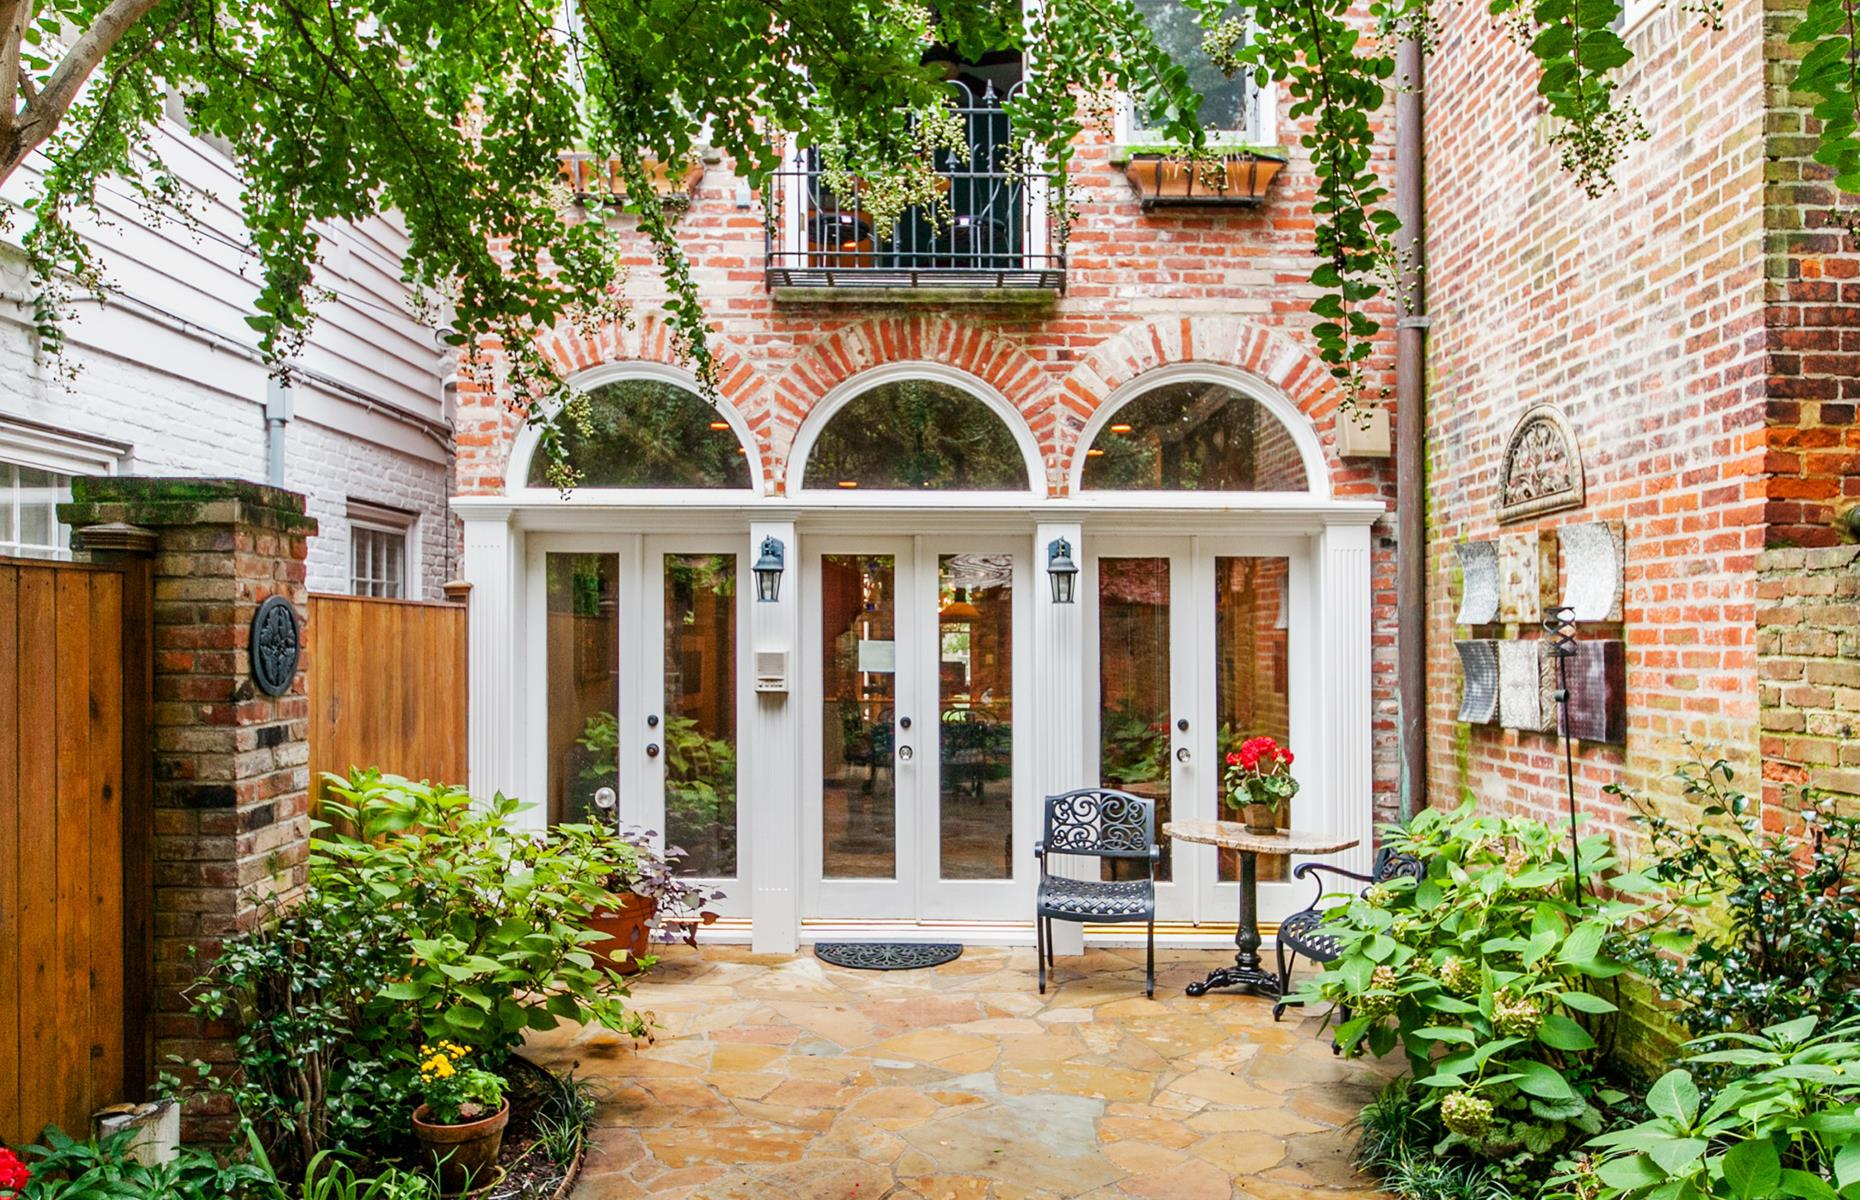 Slide 48 of 52: Located in the beautiful Old Town of Alexandria, just steps away from the Potomac River, this striking home is a country cottage meets Victorian estate. The three-bedroom townhouse has lots of original details like tall ceilings, heart pine flooring and antique furnishings throughout. Outside, there's a serene garden surrounding the property.